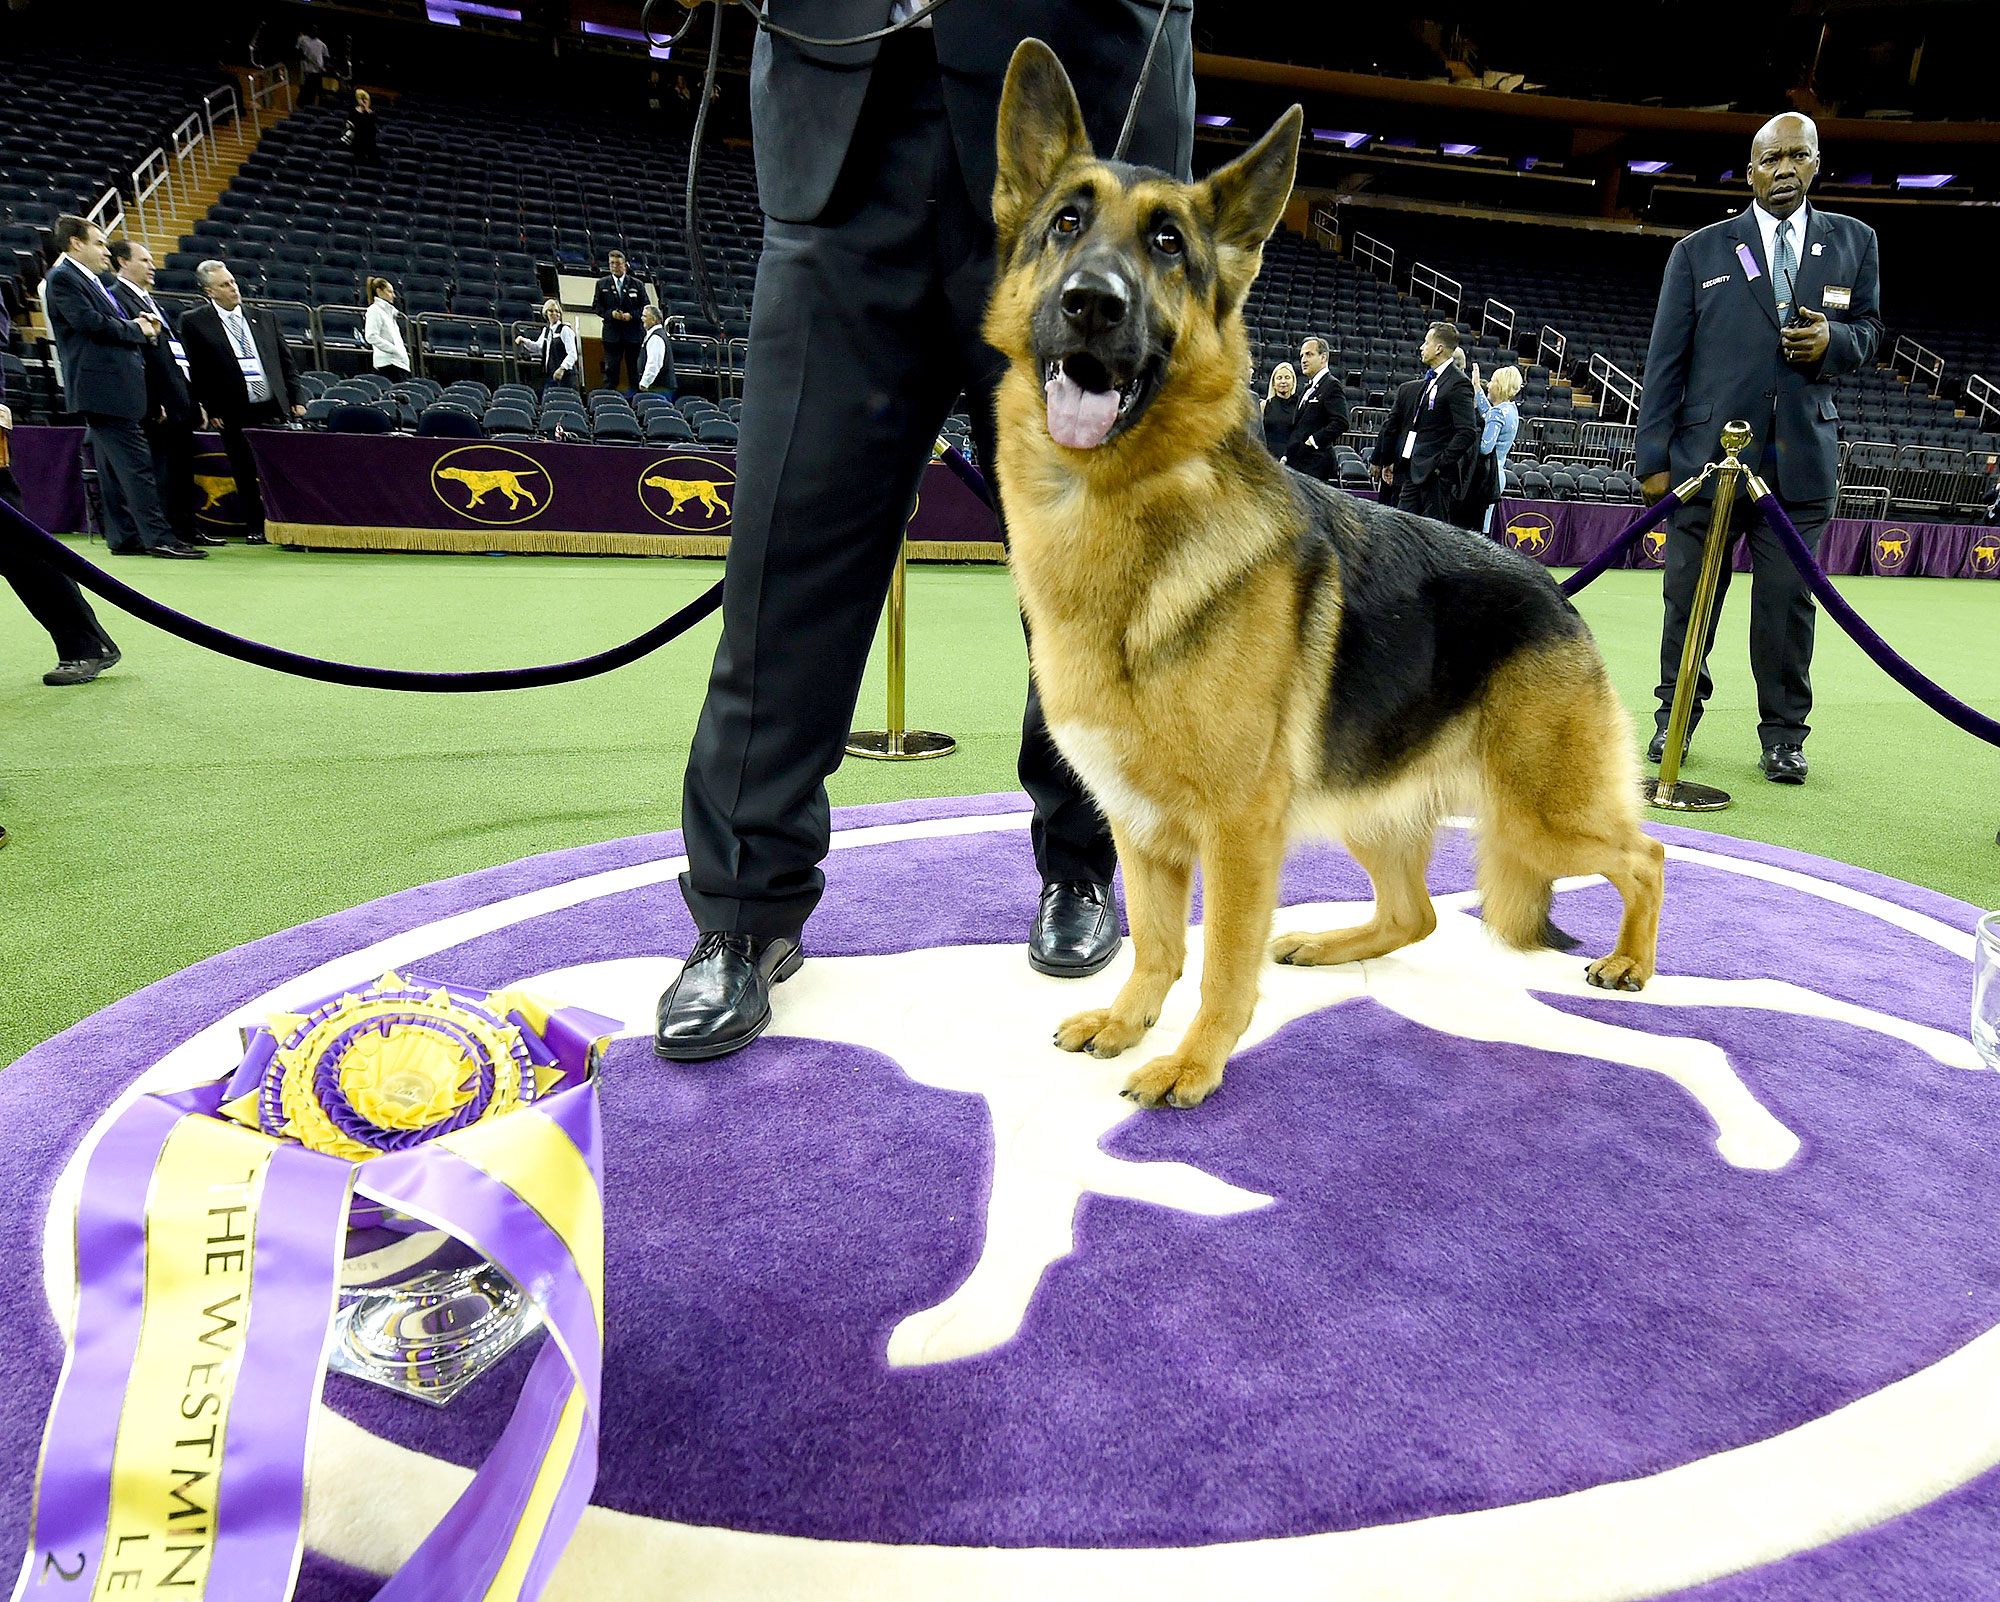 Rumor, a German shepherd, stands next to Kent Boyleshis, the handler after it won